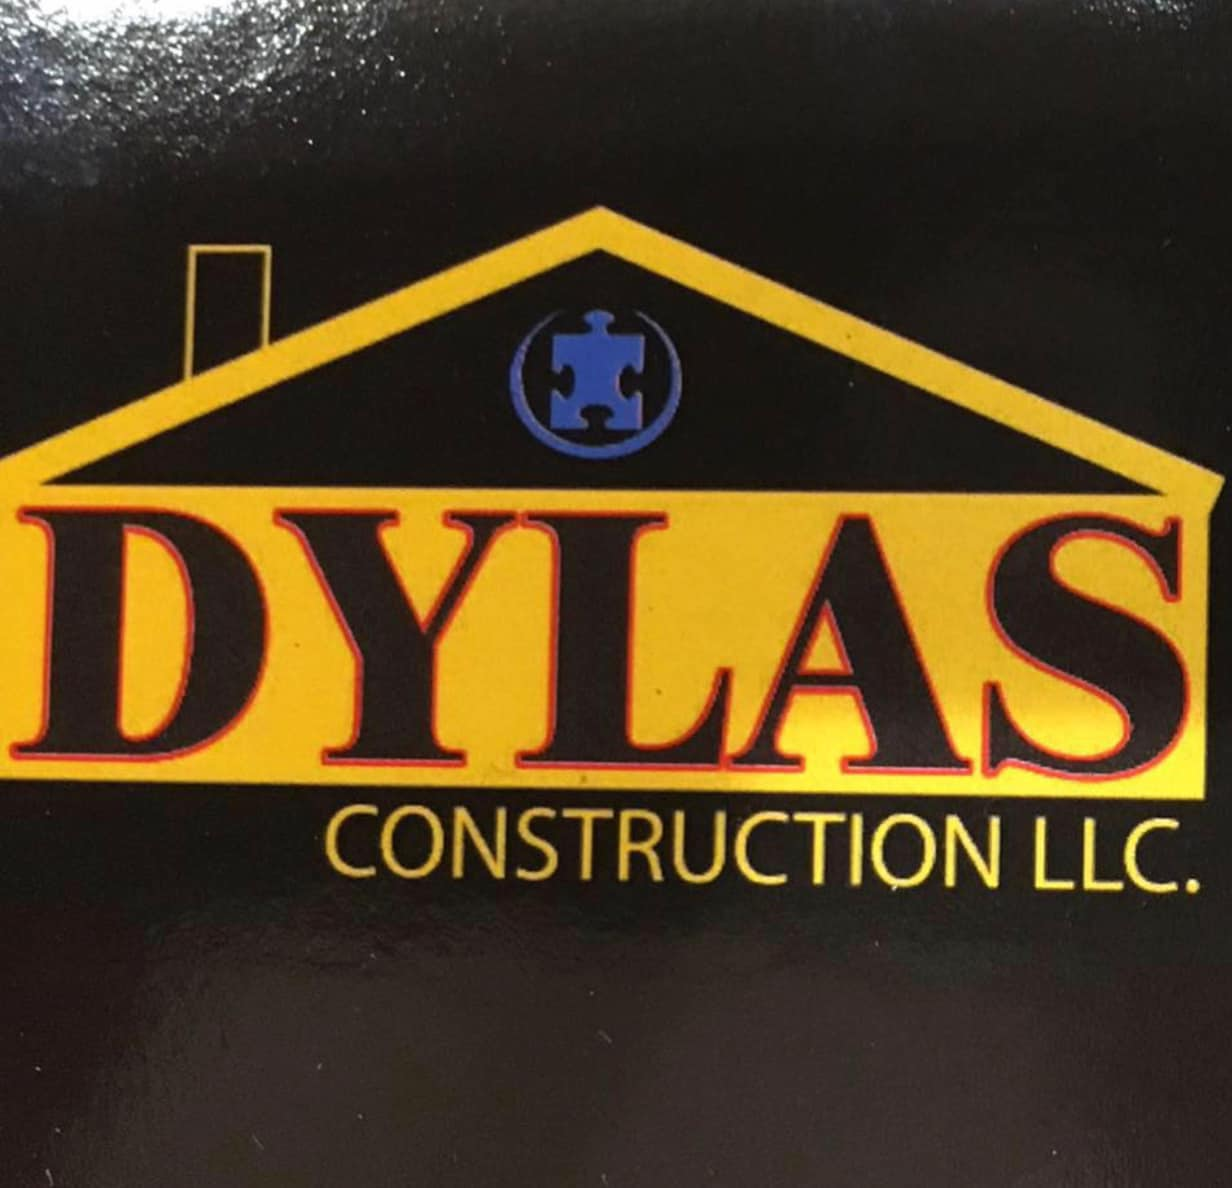 Dylas Construction, LLC